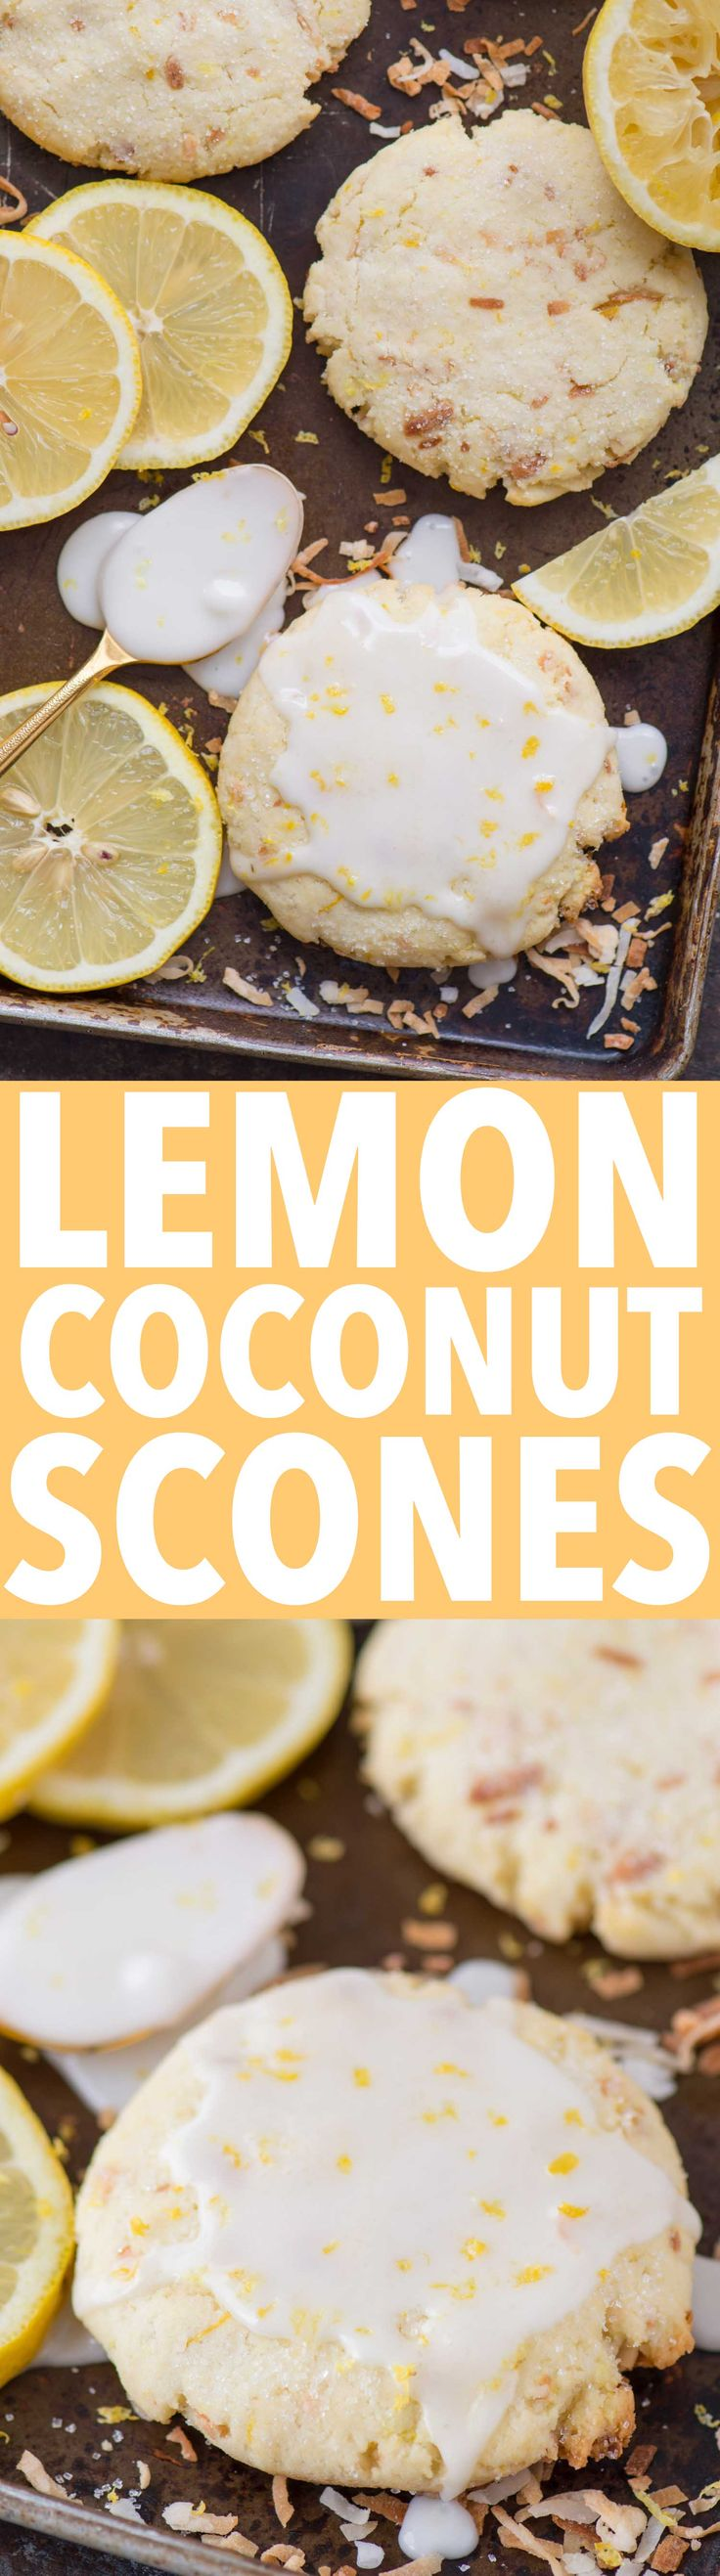 TOASTED COCONUT LEMON SCONES - sweet lemon citrus scones with toasted coconut mixed in! These are some of the BEST scones I've ever had!